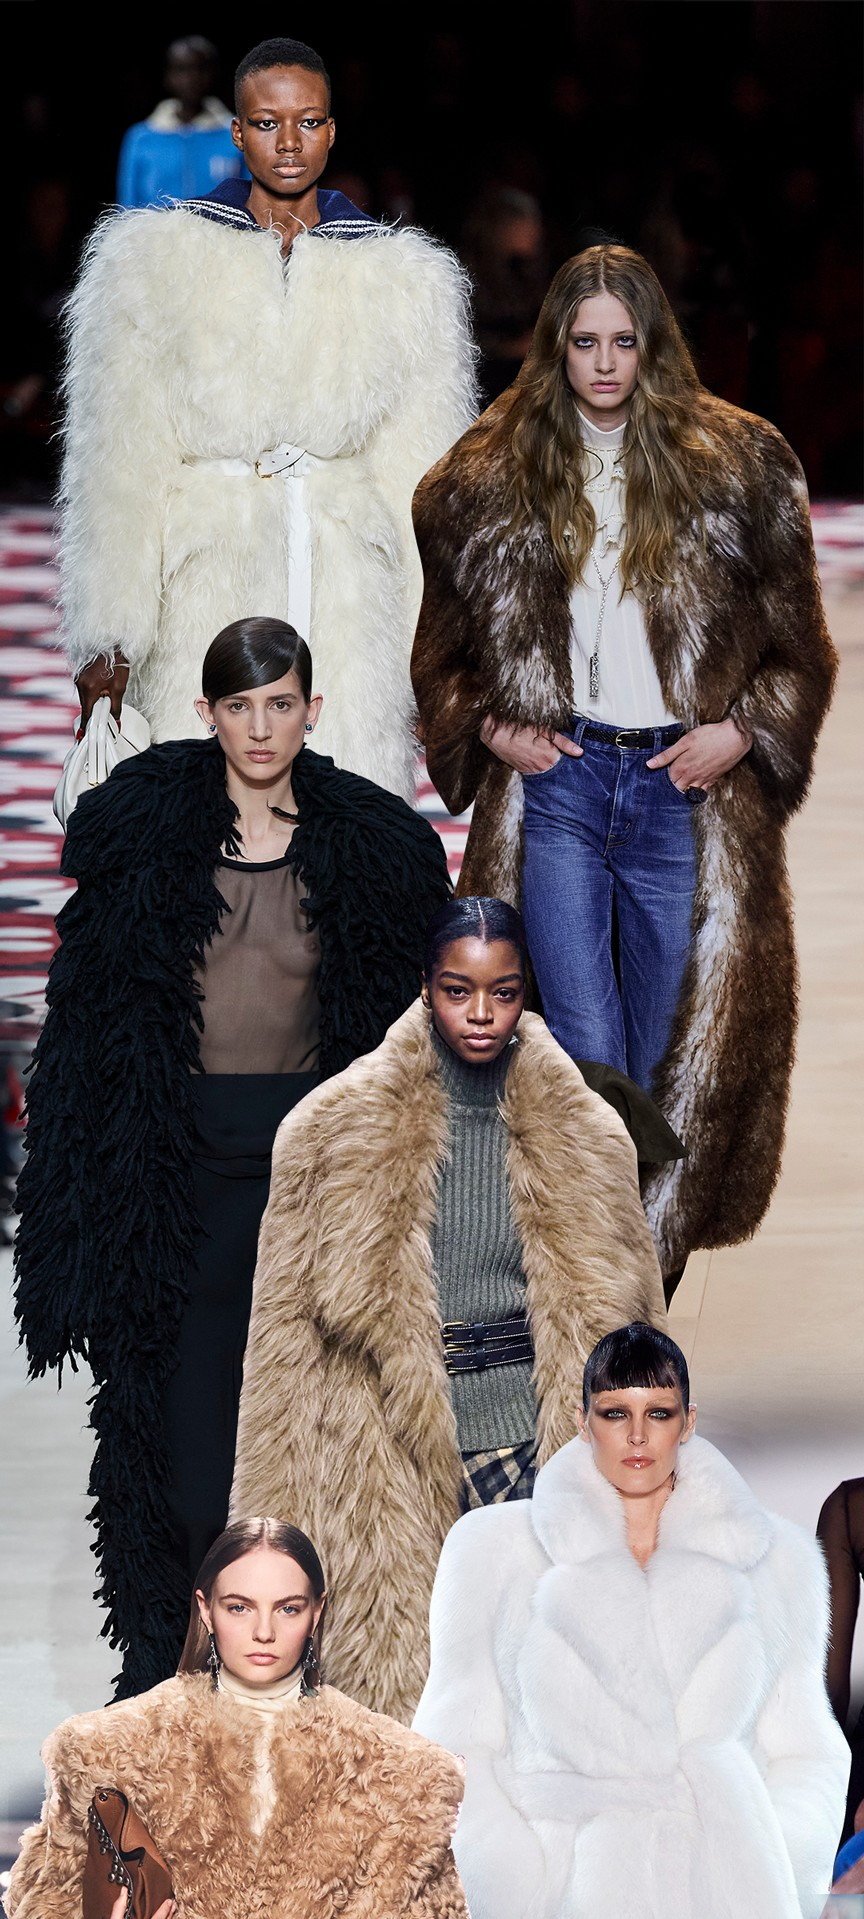 The Hottest And Most Coveted Fashion Trends From The Fall 2020 Runways (7) fashion trend The Hottest And Most Coveted Fashion Trends From The Fall 2020 Runways The Hottest And Most Coveted Fashion Trends From The Fall 2020 Runways 7